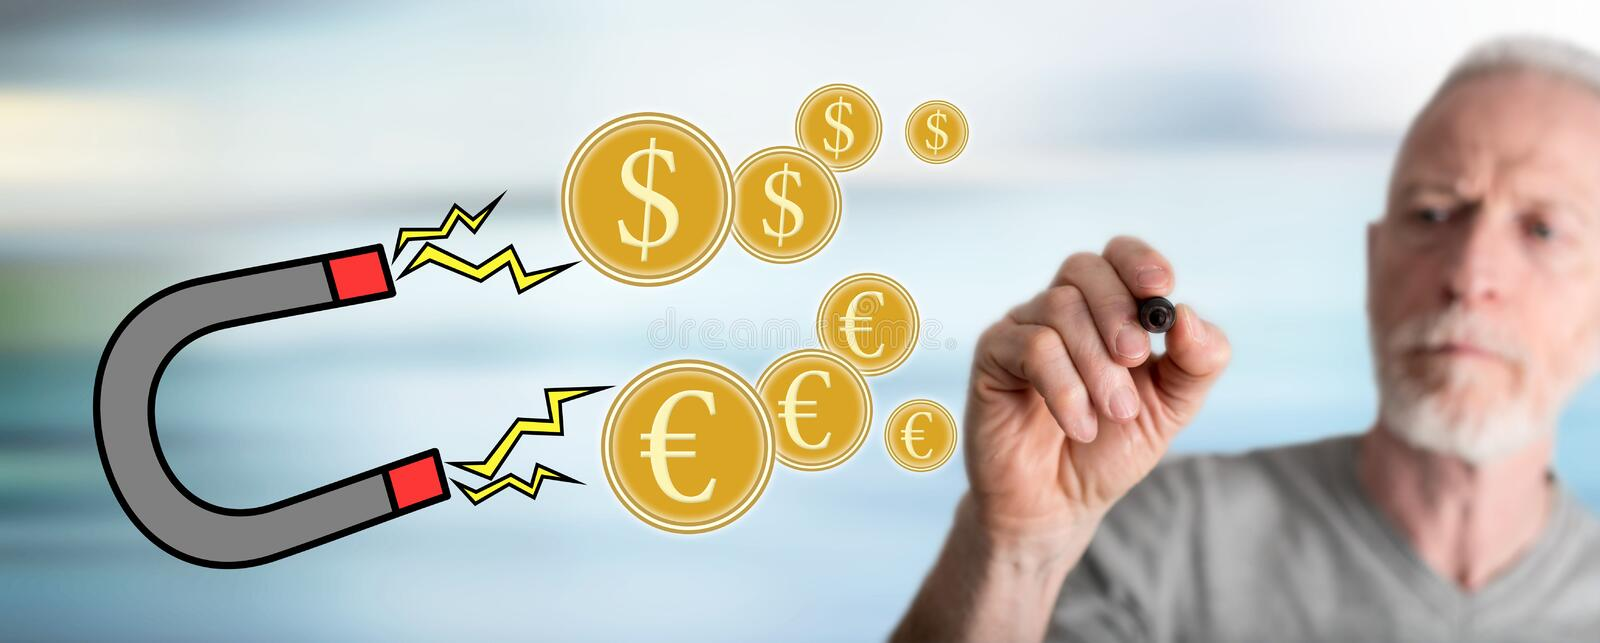 Man drawing money attraction concept stock photo